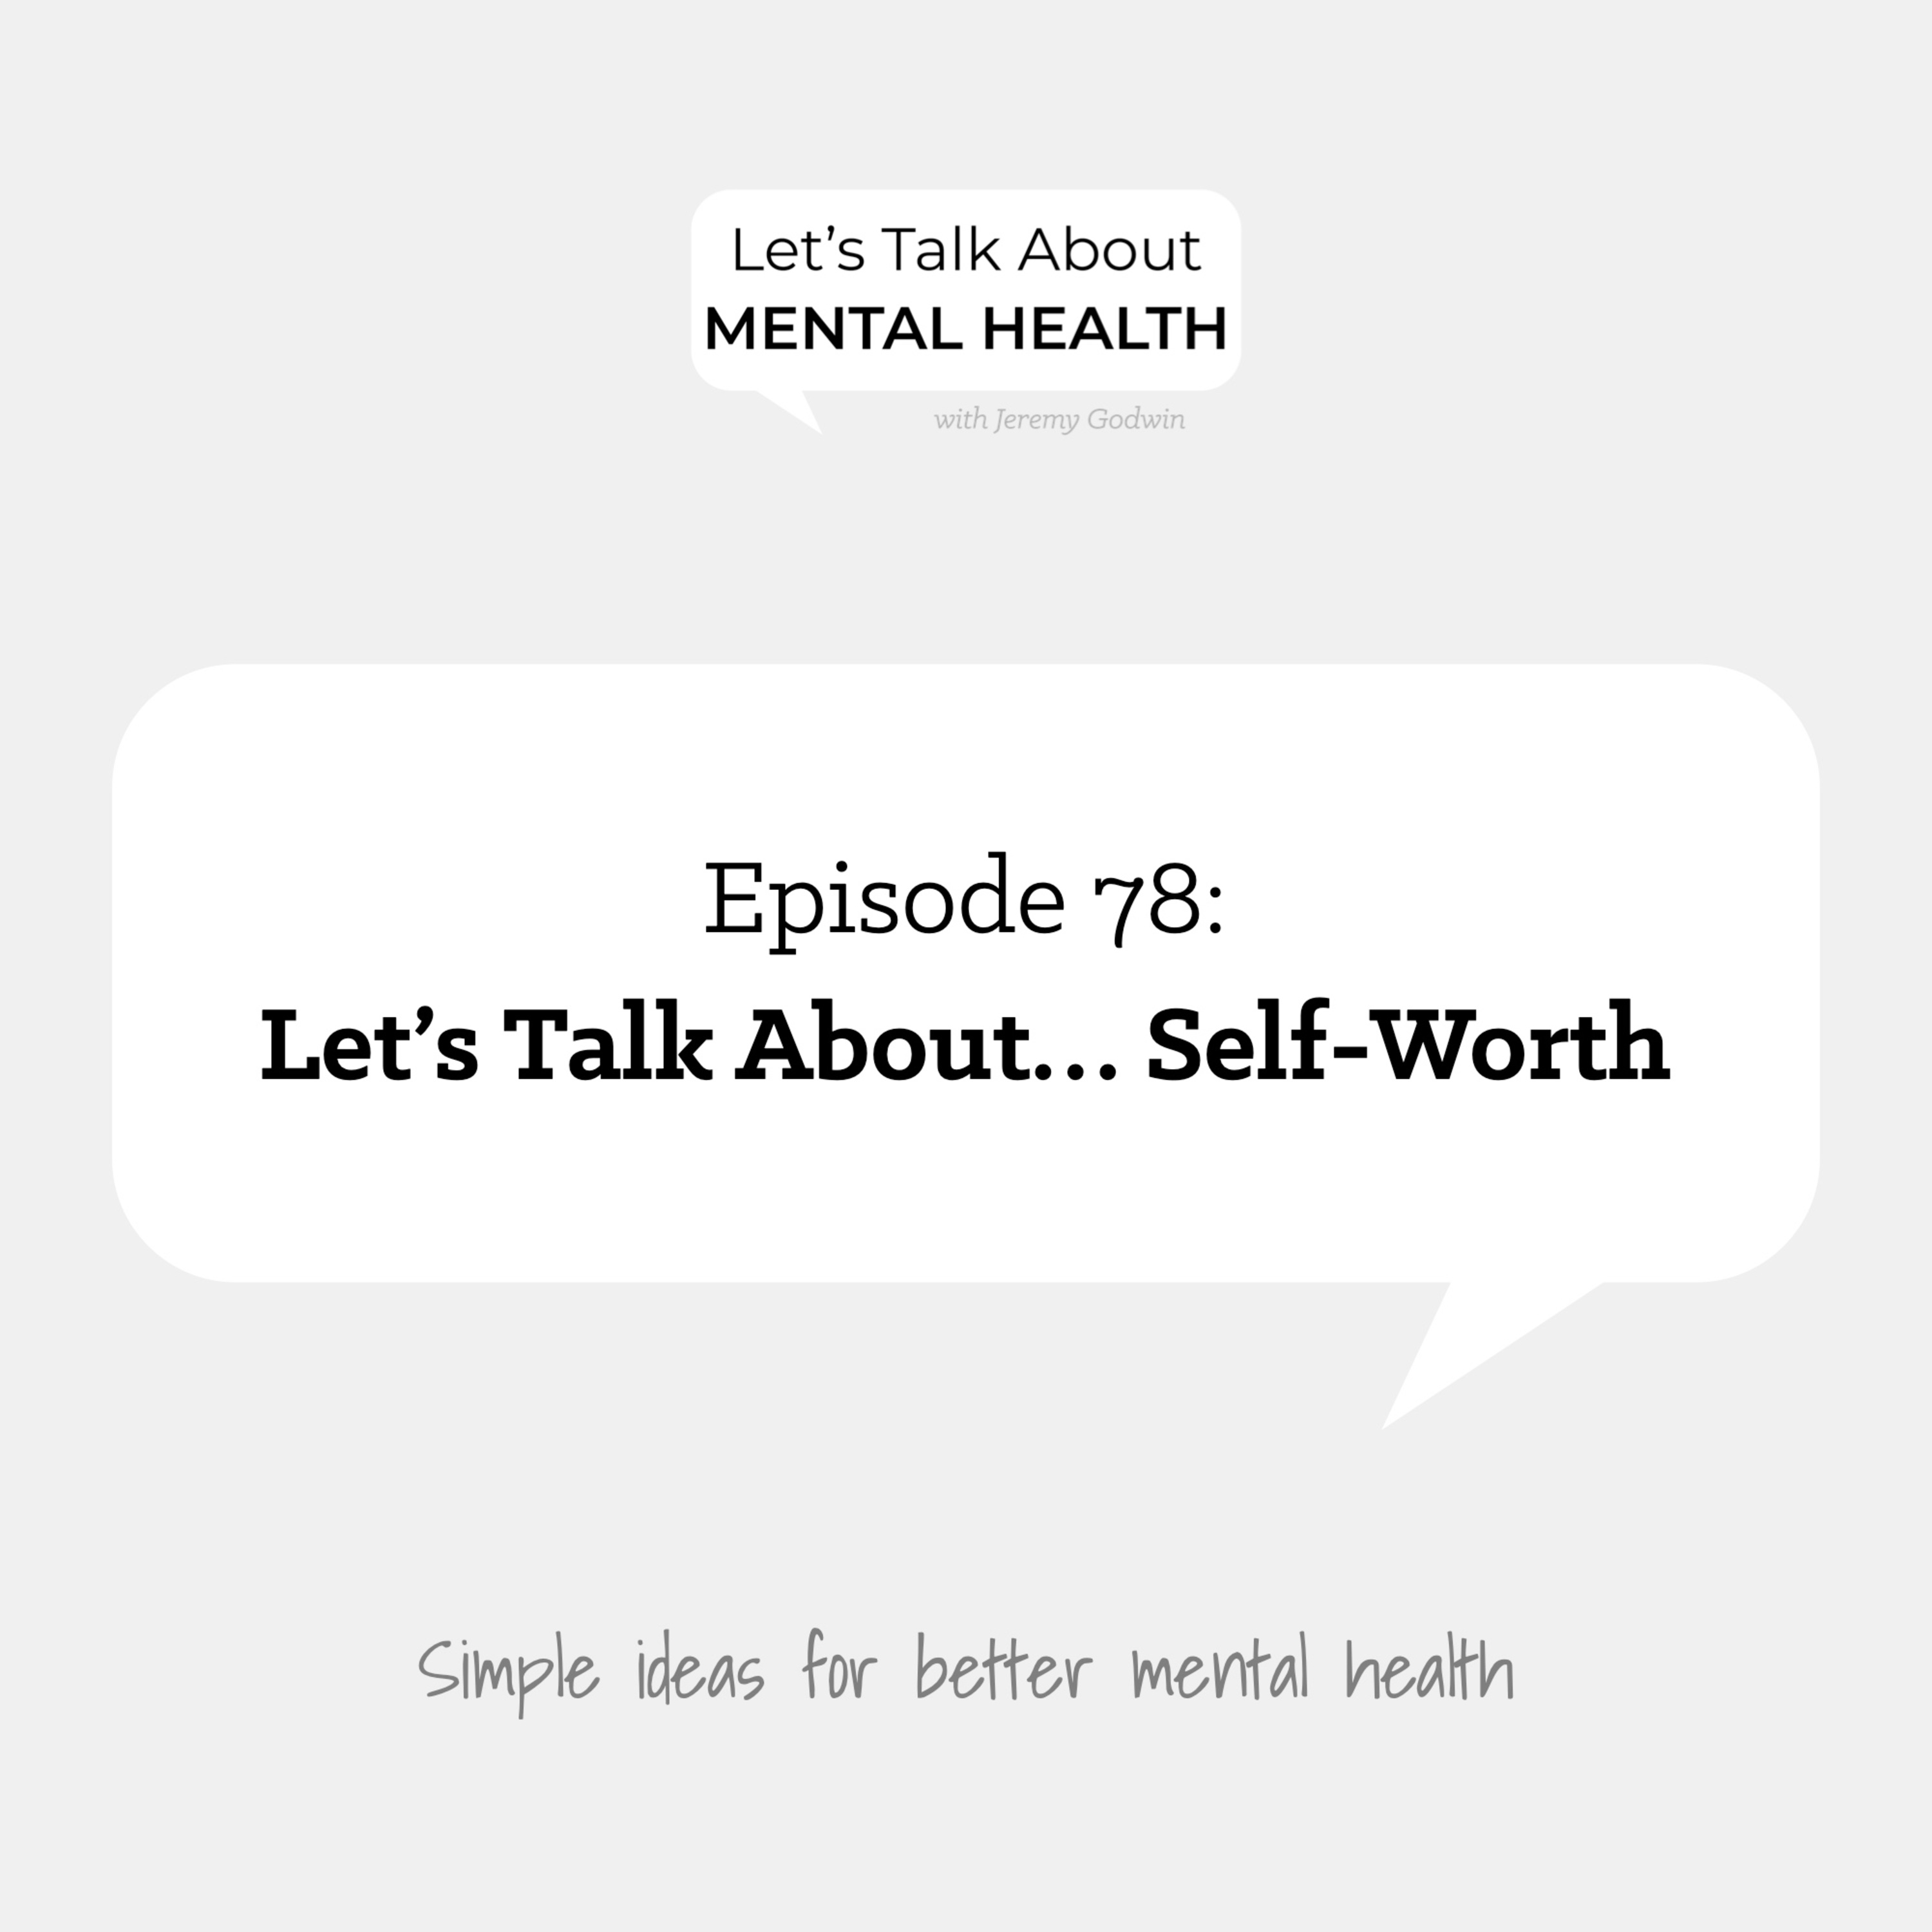 Let's Talk About Mental Health - Let's Talk About... Self-Worth